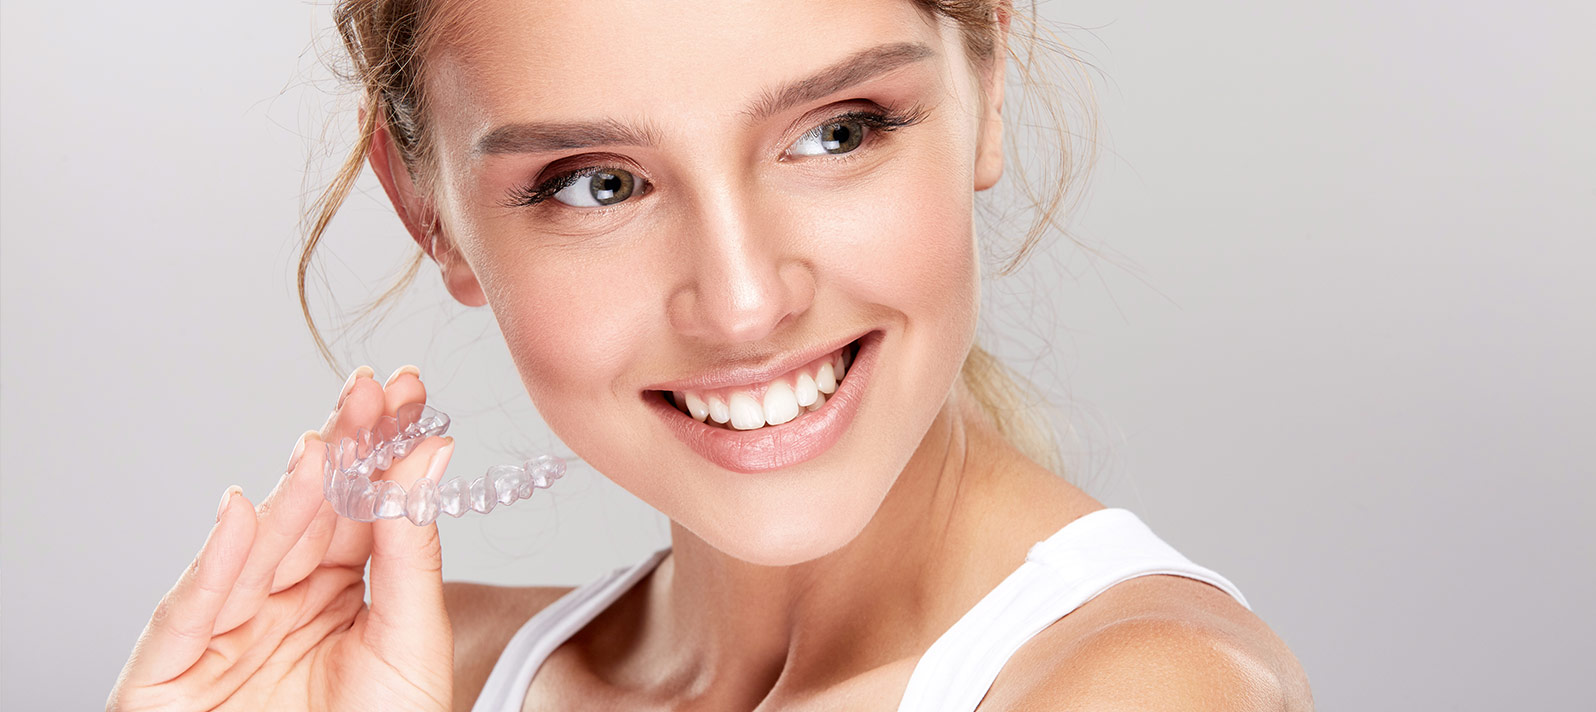 Ortodoncia invisible para conseguir una sonrisa perfecta - Dental Roca